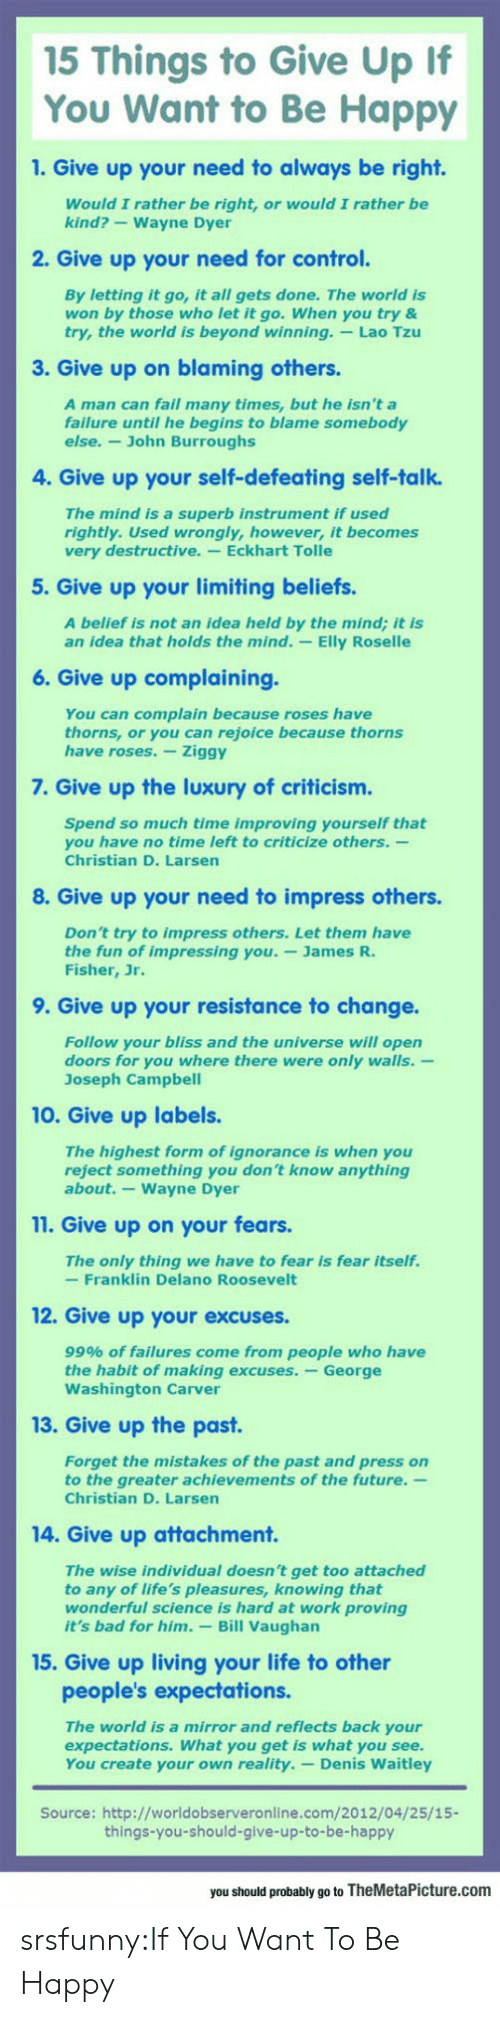 Attachment: 15 Things to Give Up If  You Want to Be Happy  1. Give up your need to always be right.  Would I rather be right, or would I rather be  kind?-Wayne Dyer  2. Give up your need for control.  By letting it go, it all gets done. The world is  won by those who let it go. When you try &  try, the world is beyond winning. Lao Tzu  3. Give up on blaming others  A man can fail many times, but he isn't a  failure until he begins to blame somebody  else.- John Burroughs  4. Give up your self-defeating self-talk.  The mind is a superb instrument if used  rightly. Used wrongly, however, it becomes  very destructive. Eckhart Tolle  5. Give up your limiting beliefs.  A belief is not an idea held by the mind; it is  an idea that holds the mind. -Elly Roselle  6. Give up complaining.  You can complain because roses have  thorns, or you can rejoice because thorns  have roses. Ziggy  7. Give up the luxury of criticism.  Spend so much time improving yourself that  you have no time left to criticize others.-  Christian D. Larsen  8. Give up your need to impress others.  Don't try to impress others. Let them have  the fun of impressing you.-James R.  Fisher, Jr.  9. Give up your resistance to change.  Follow your bliss and the universe will open  doors for you where there were only walls.-  Joseph Campbel  10. Give up labels.  The highest form of ignorance is when you  reject something you don't know anything  about.-Wayne Dyer  11. Give up on your fears.  The only thing we have to fear is fear itself.  -Franklin Delano Roosevelt  12. Give up your excuses.  99% of failures come from people who have  the habit of making excuses. -George  Washington Carver  13. Give up the past  Forget the mistakes of the past and press on  to the greater achievements of the future.  Christian D. Larsen  14. Give up attachment.  The wise individual doesn't get too attached  to any of life's pleasures, knowing that  wonderful science is hard at work proving  it's bad for him. Bill Vaughan  15. G